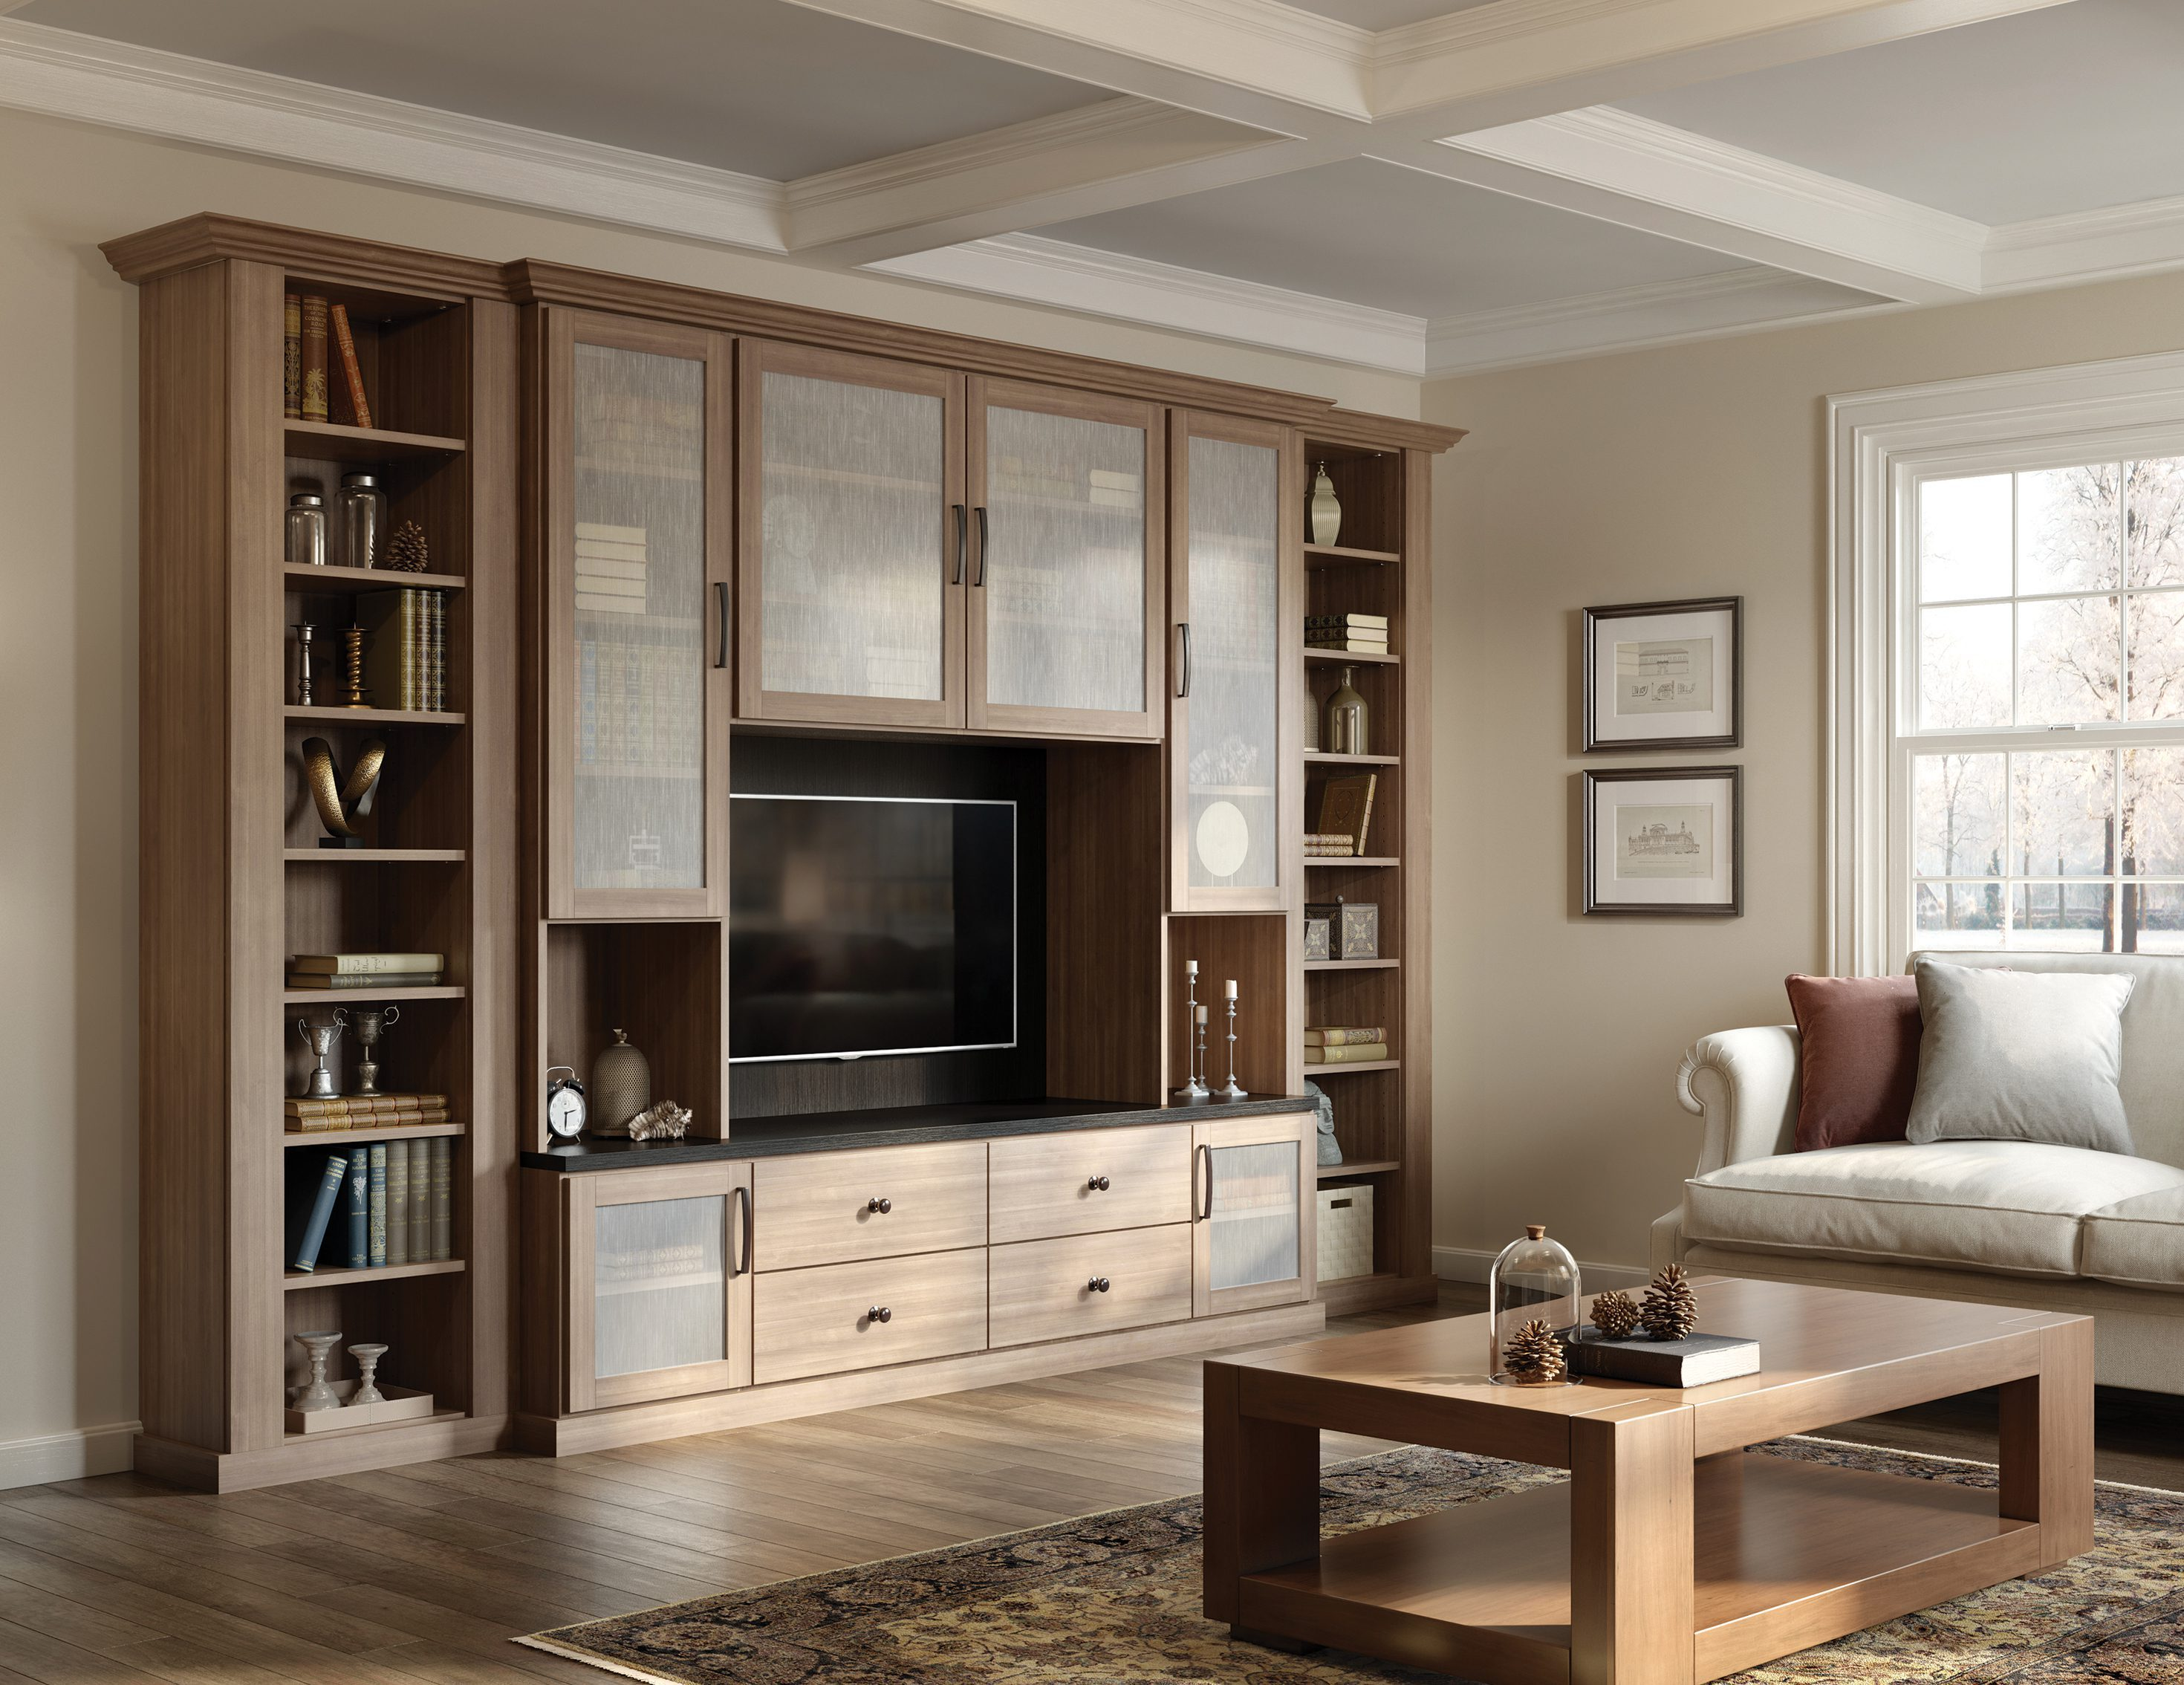 Nice Light Brown Wood Grain Entertainment Center Shelving Drawers And Cabinets  With Frosted Glass Doors